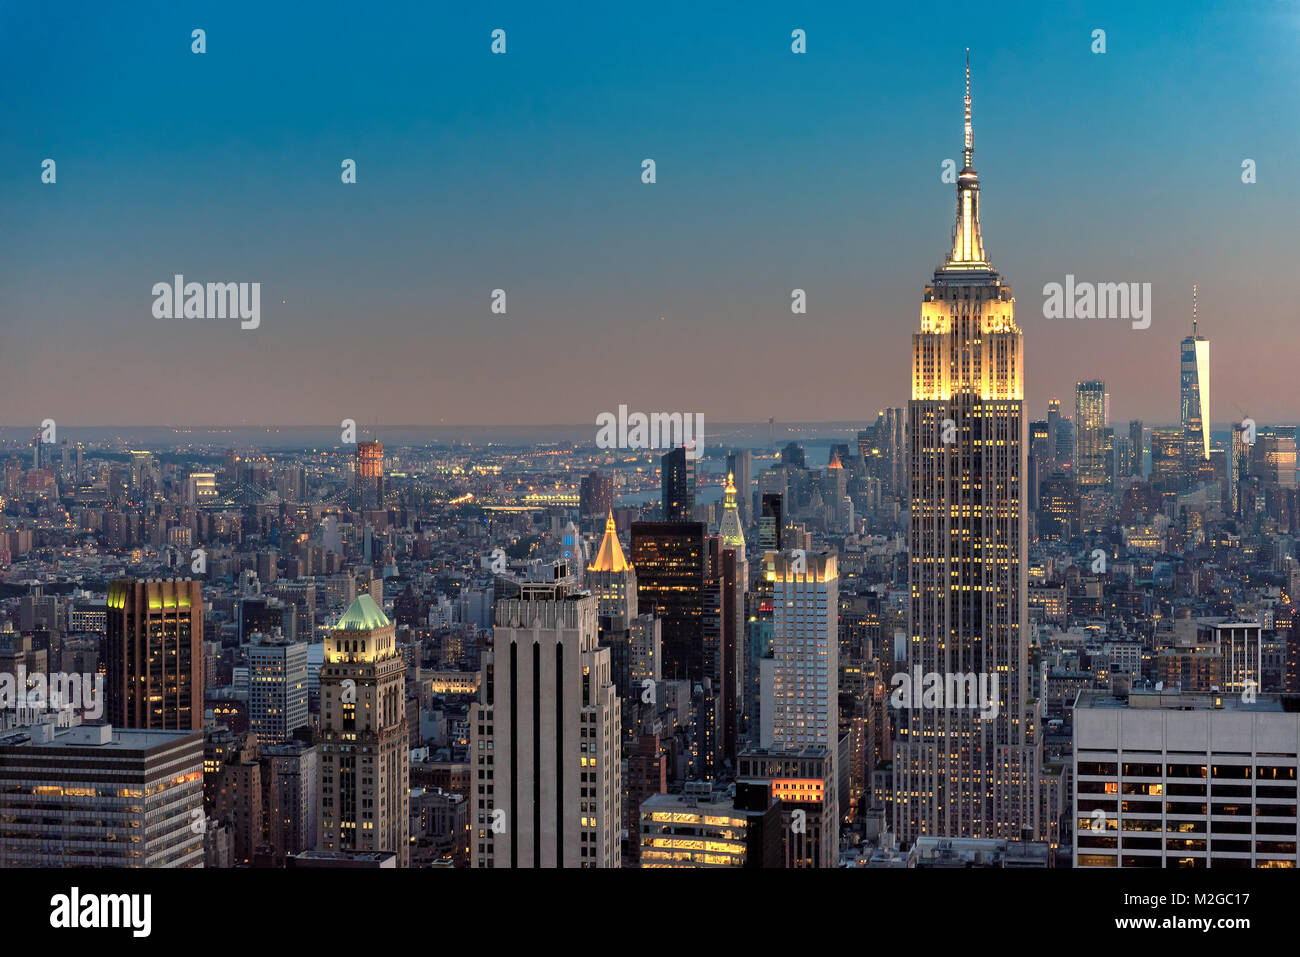 New York city skyline at sunset - Stock Image